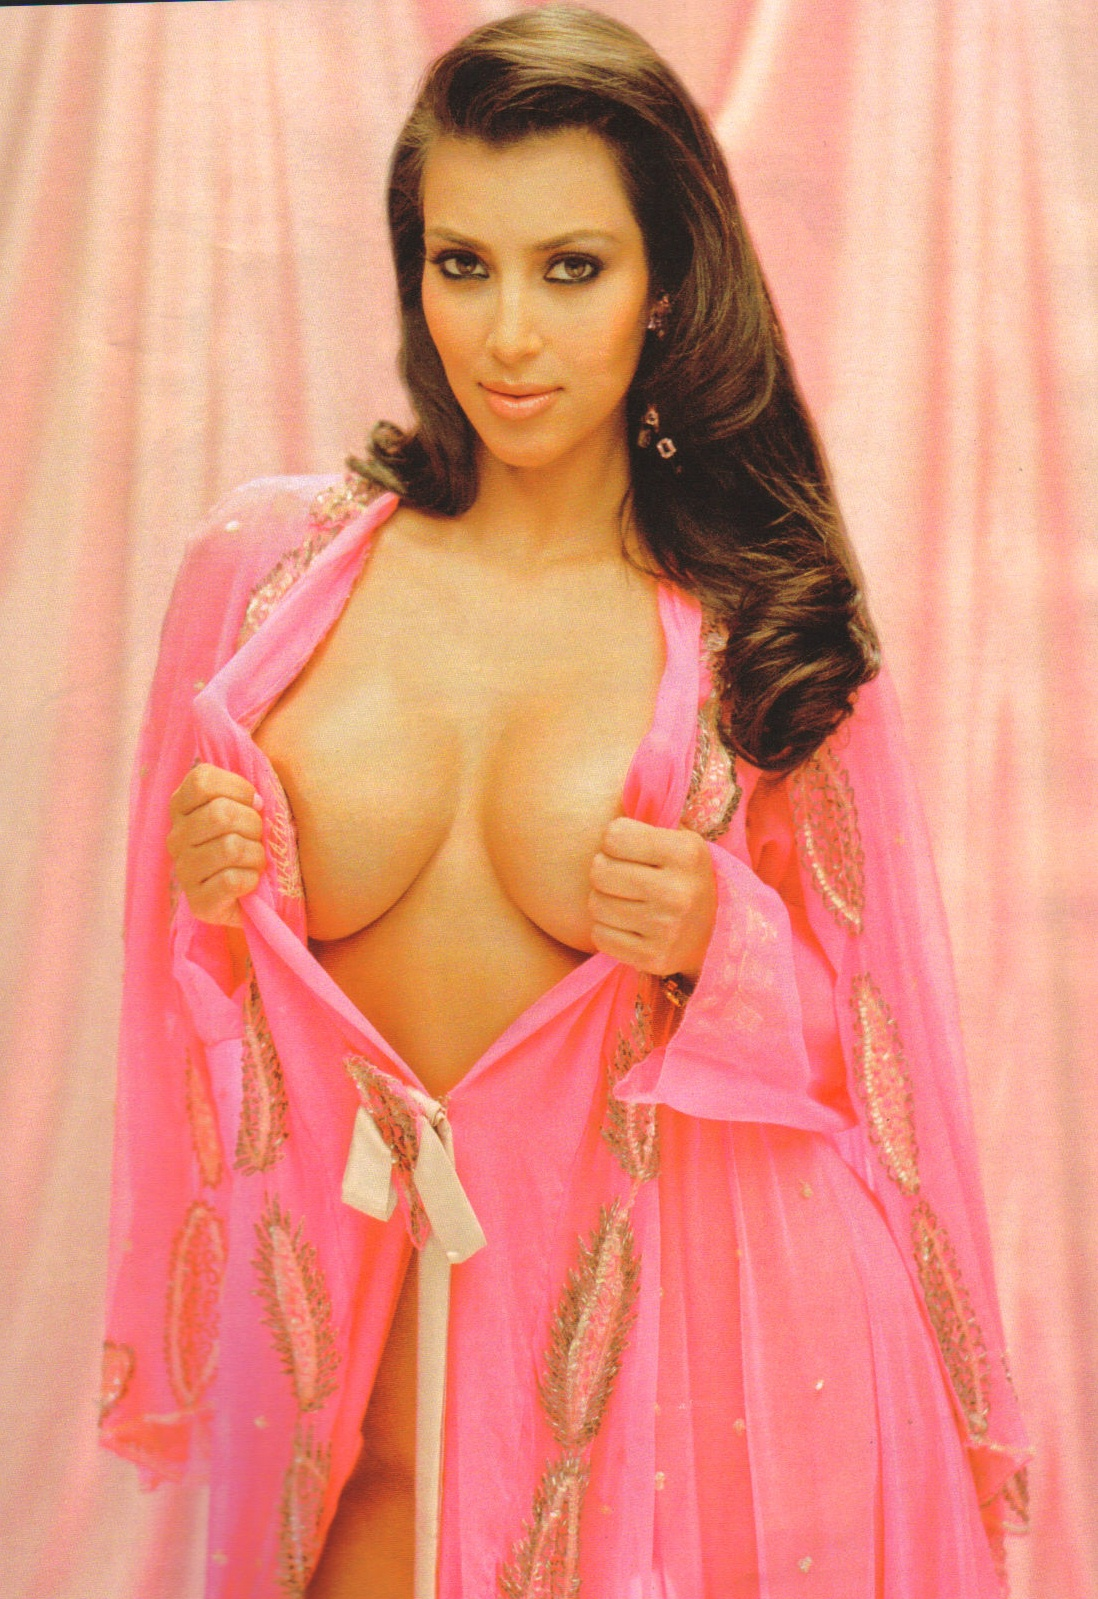 kim kardashian playboy shoot